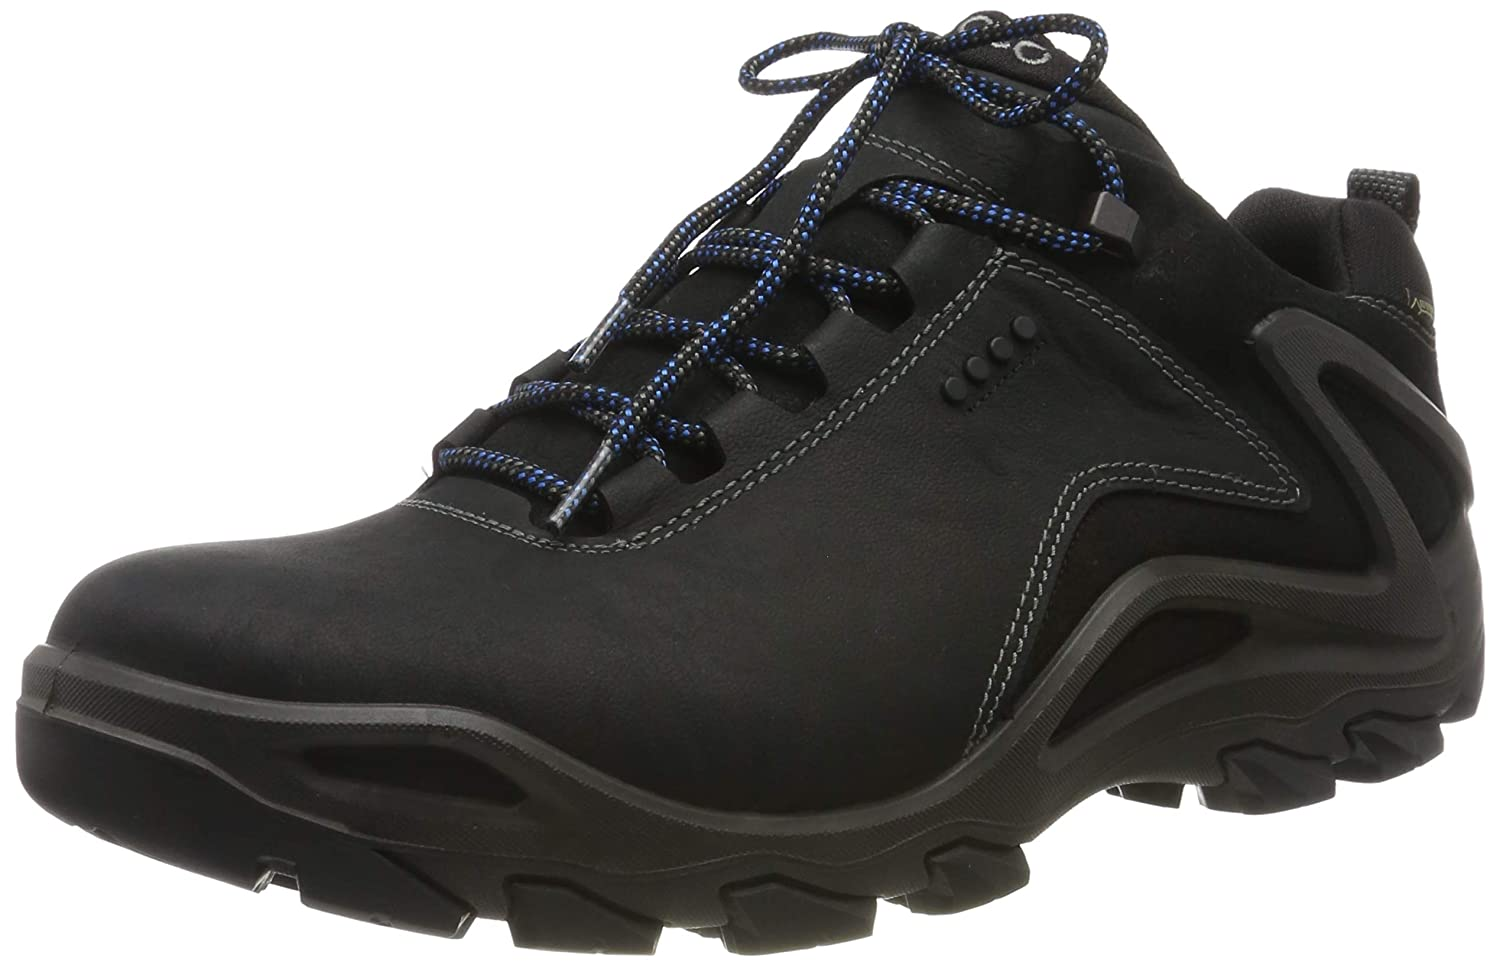 ECCO Men's Terra Evo Low Gore tex Hiking Shoe